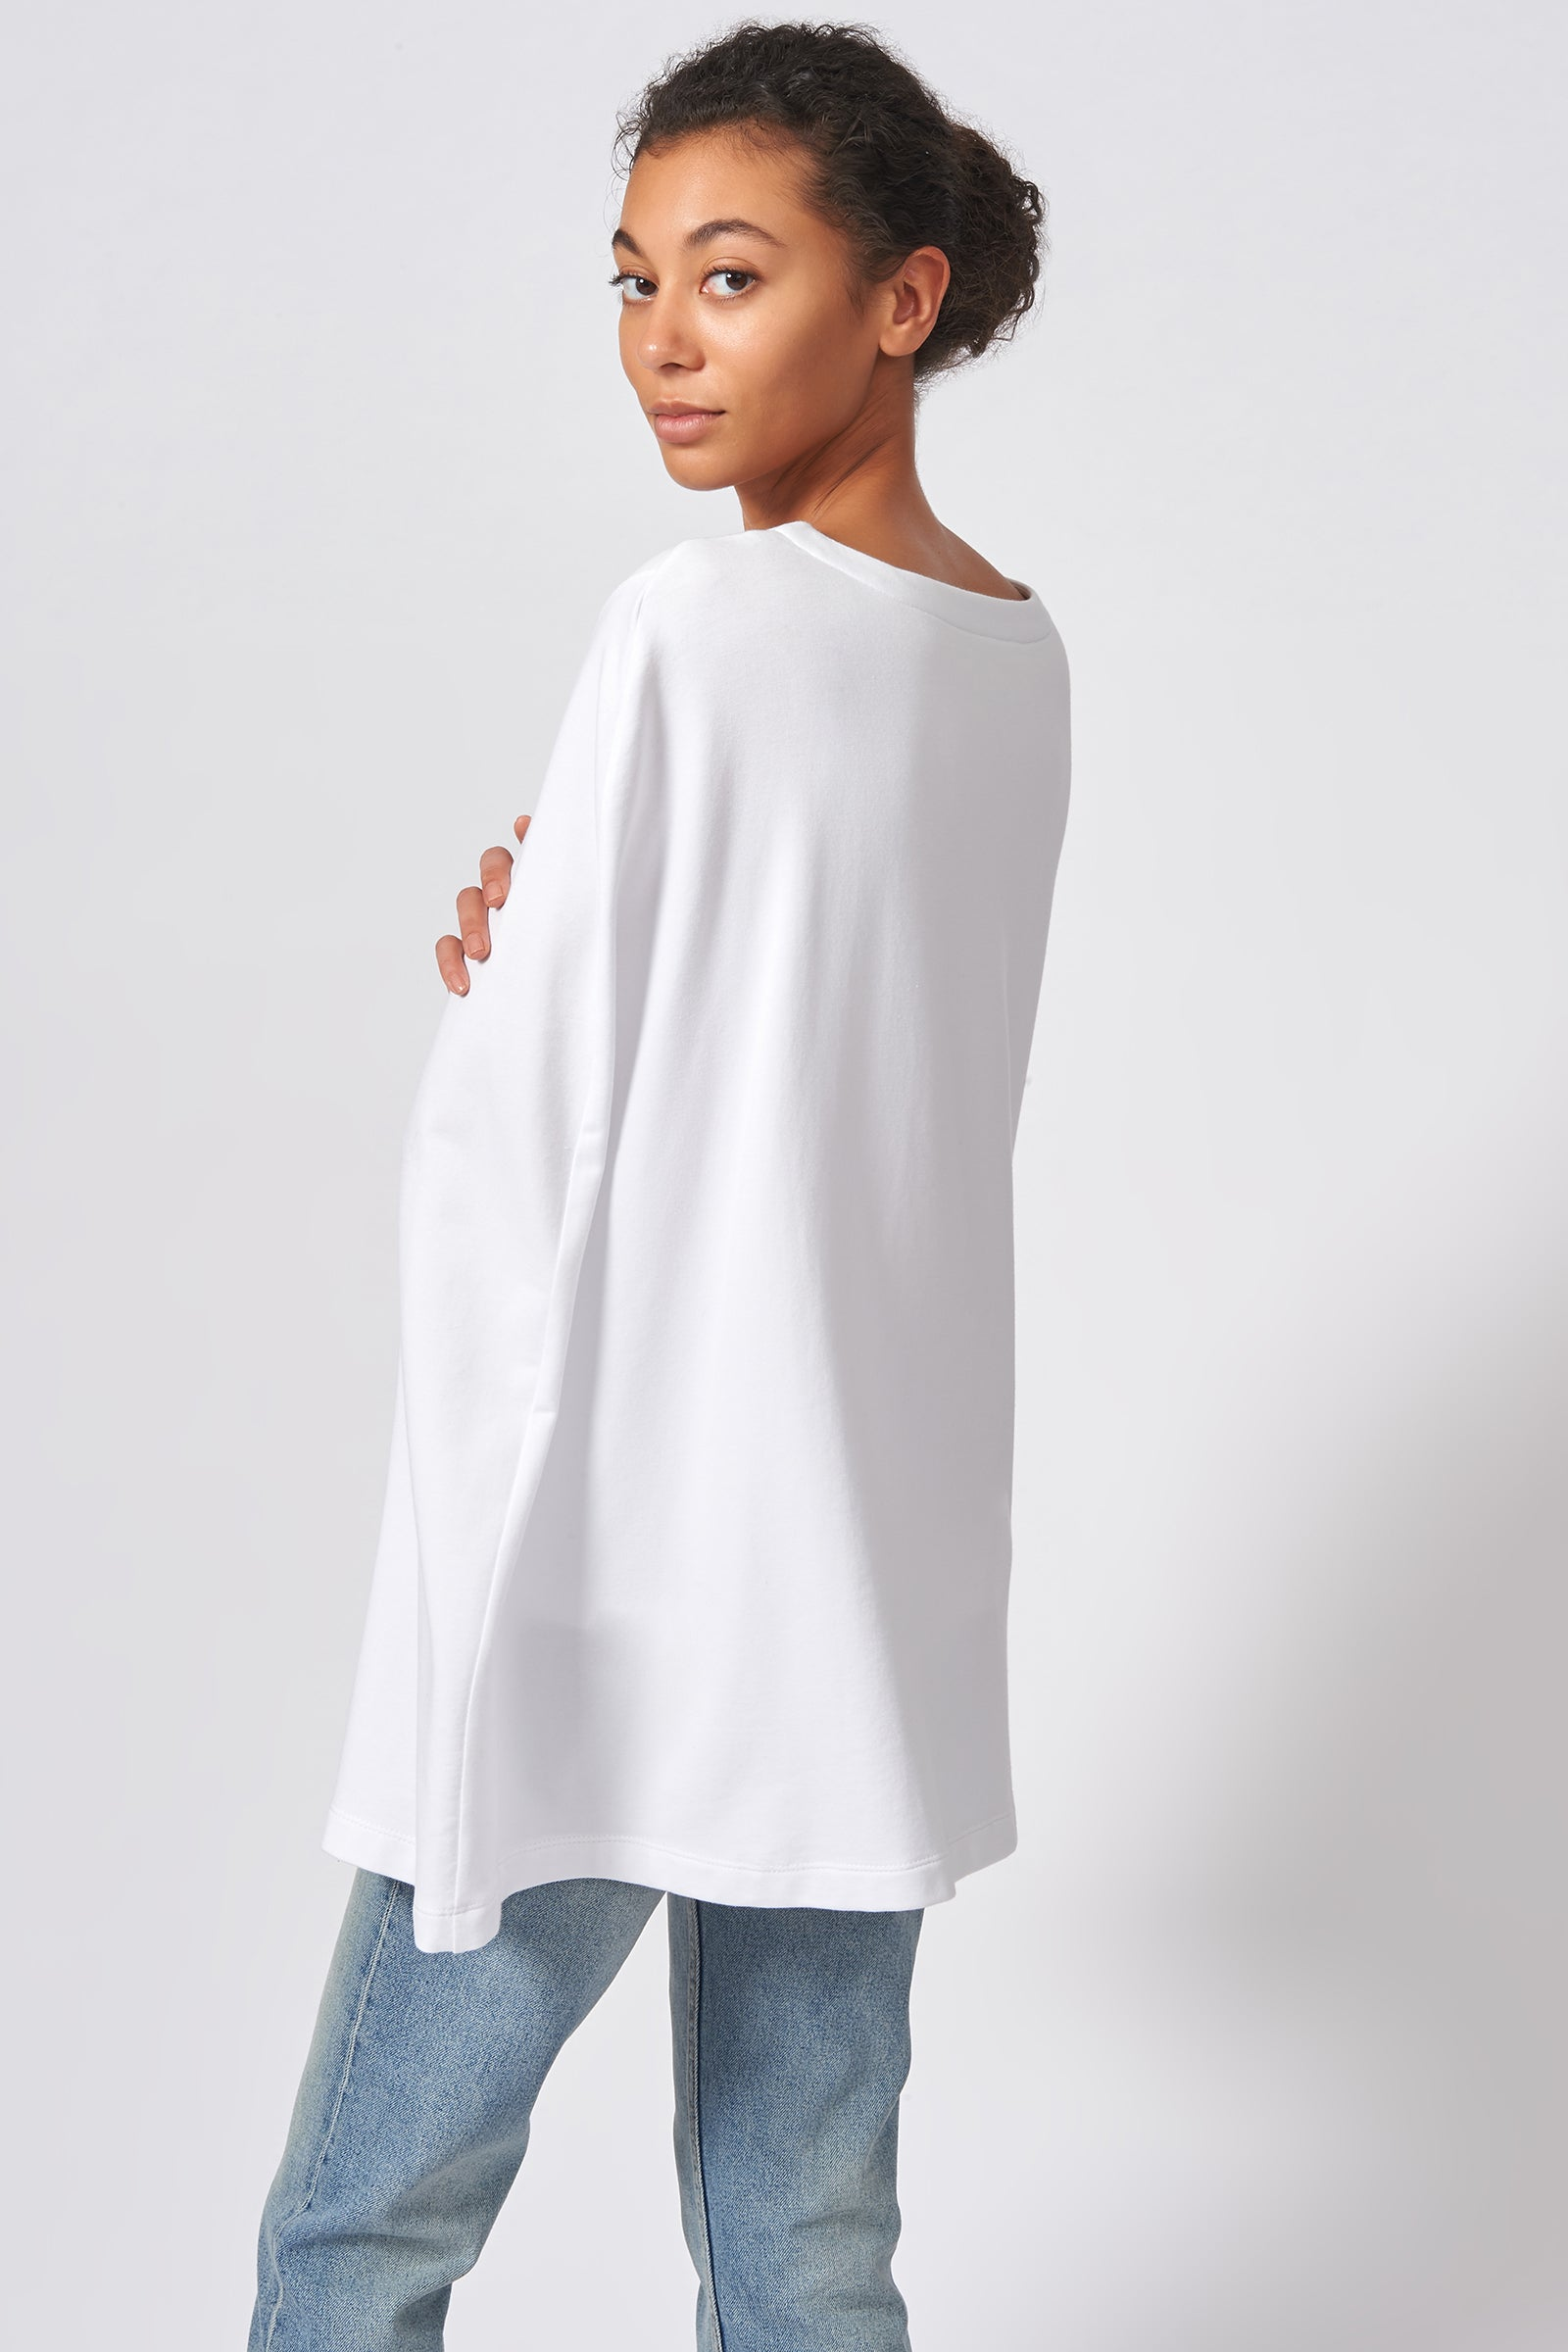 Cape Sweatshirt - White